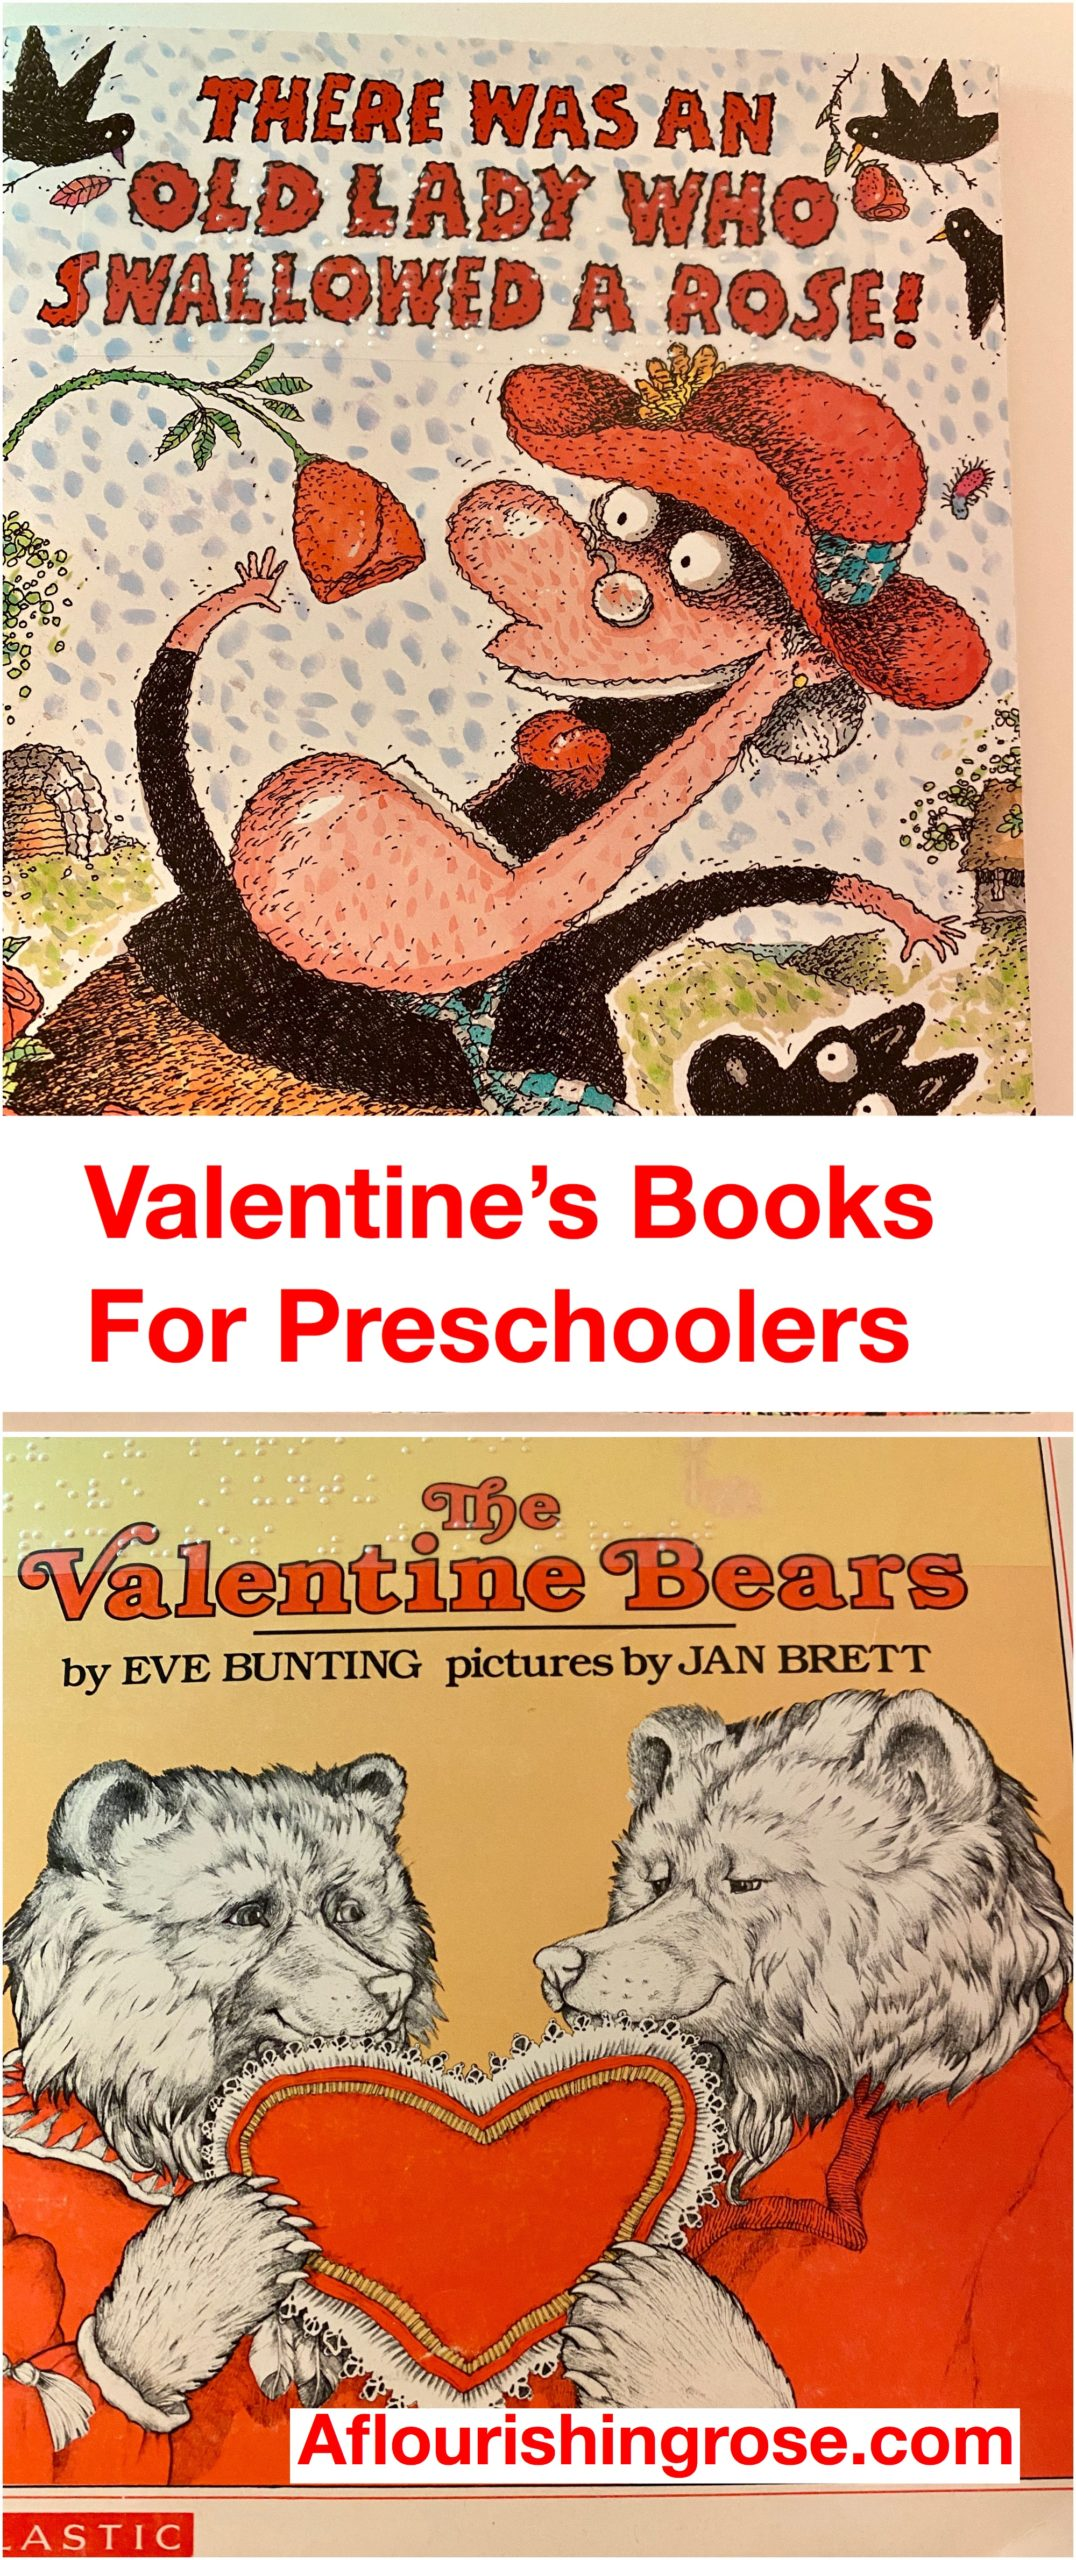 Valentine's Books for Preschoolers